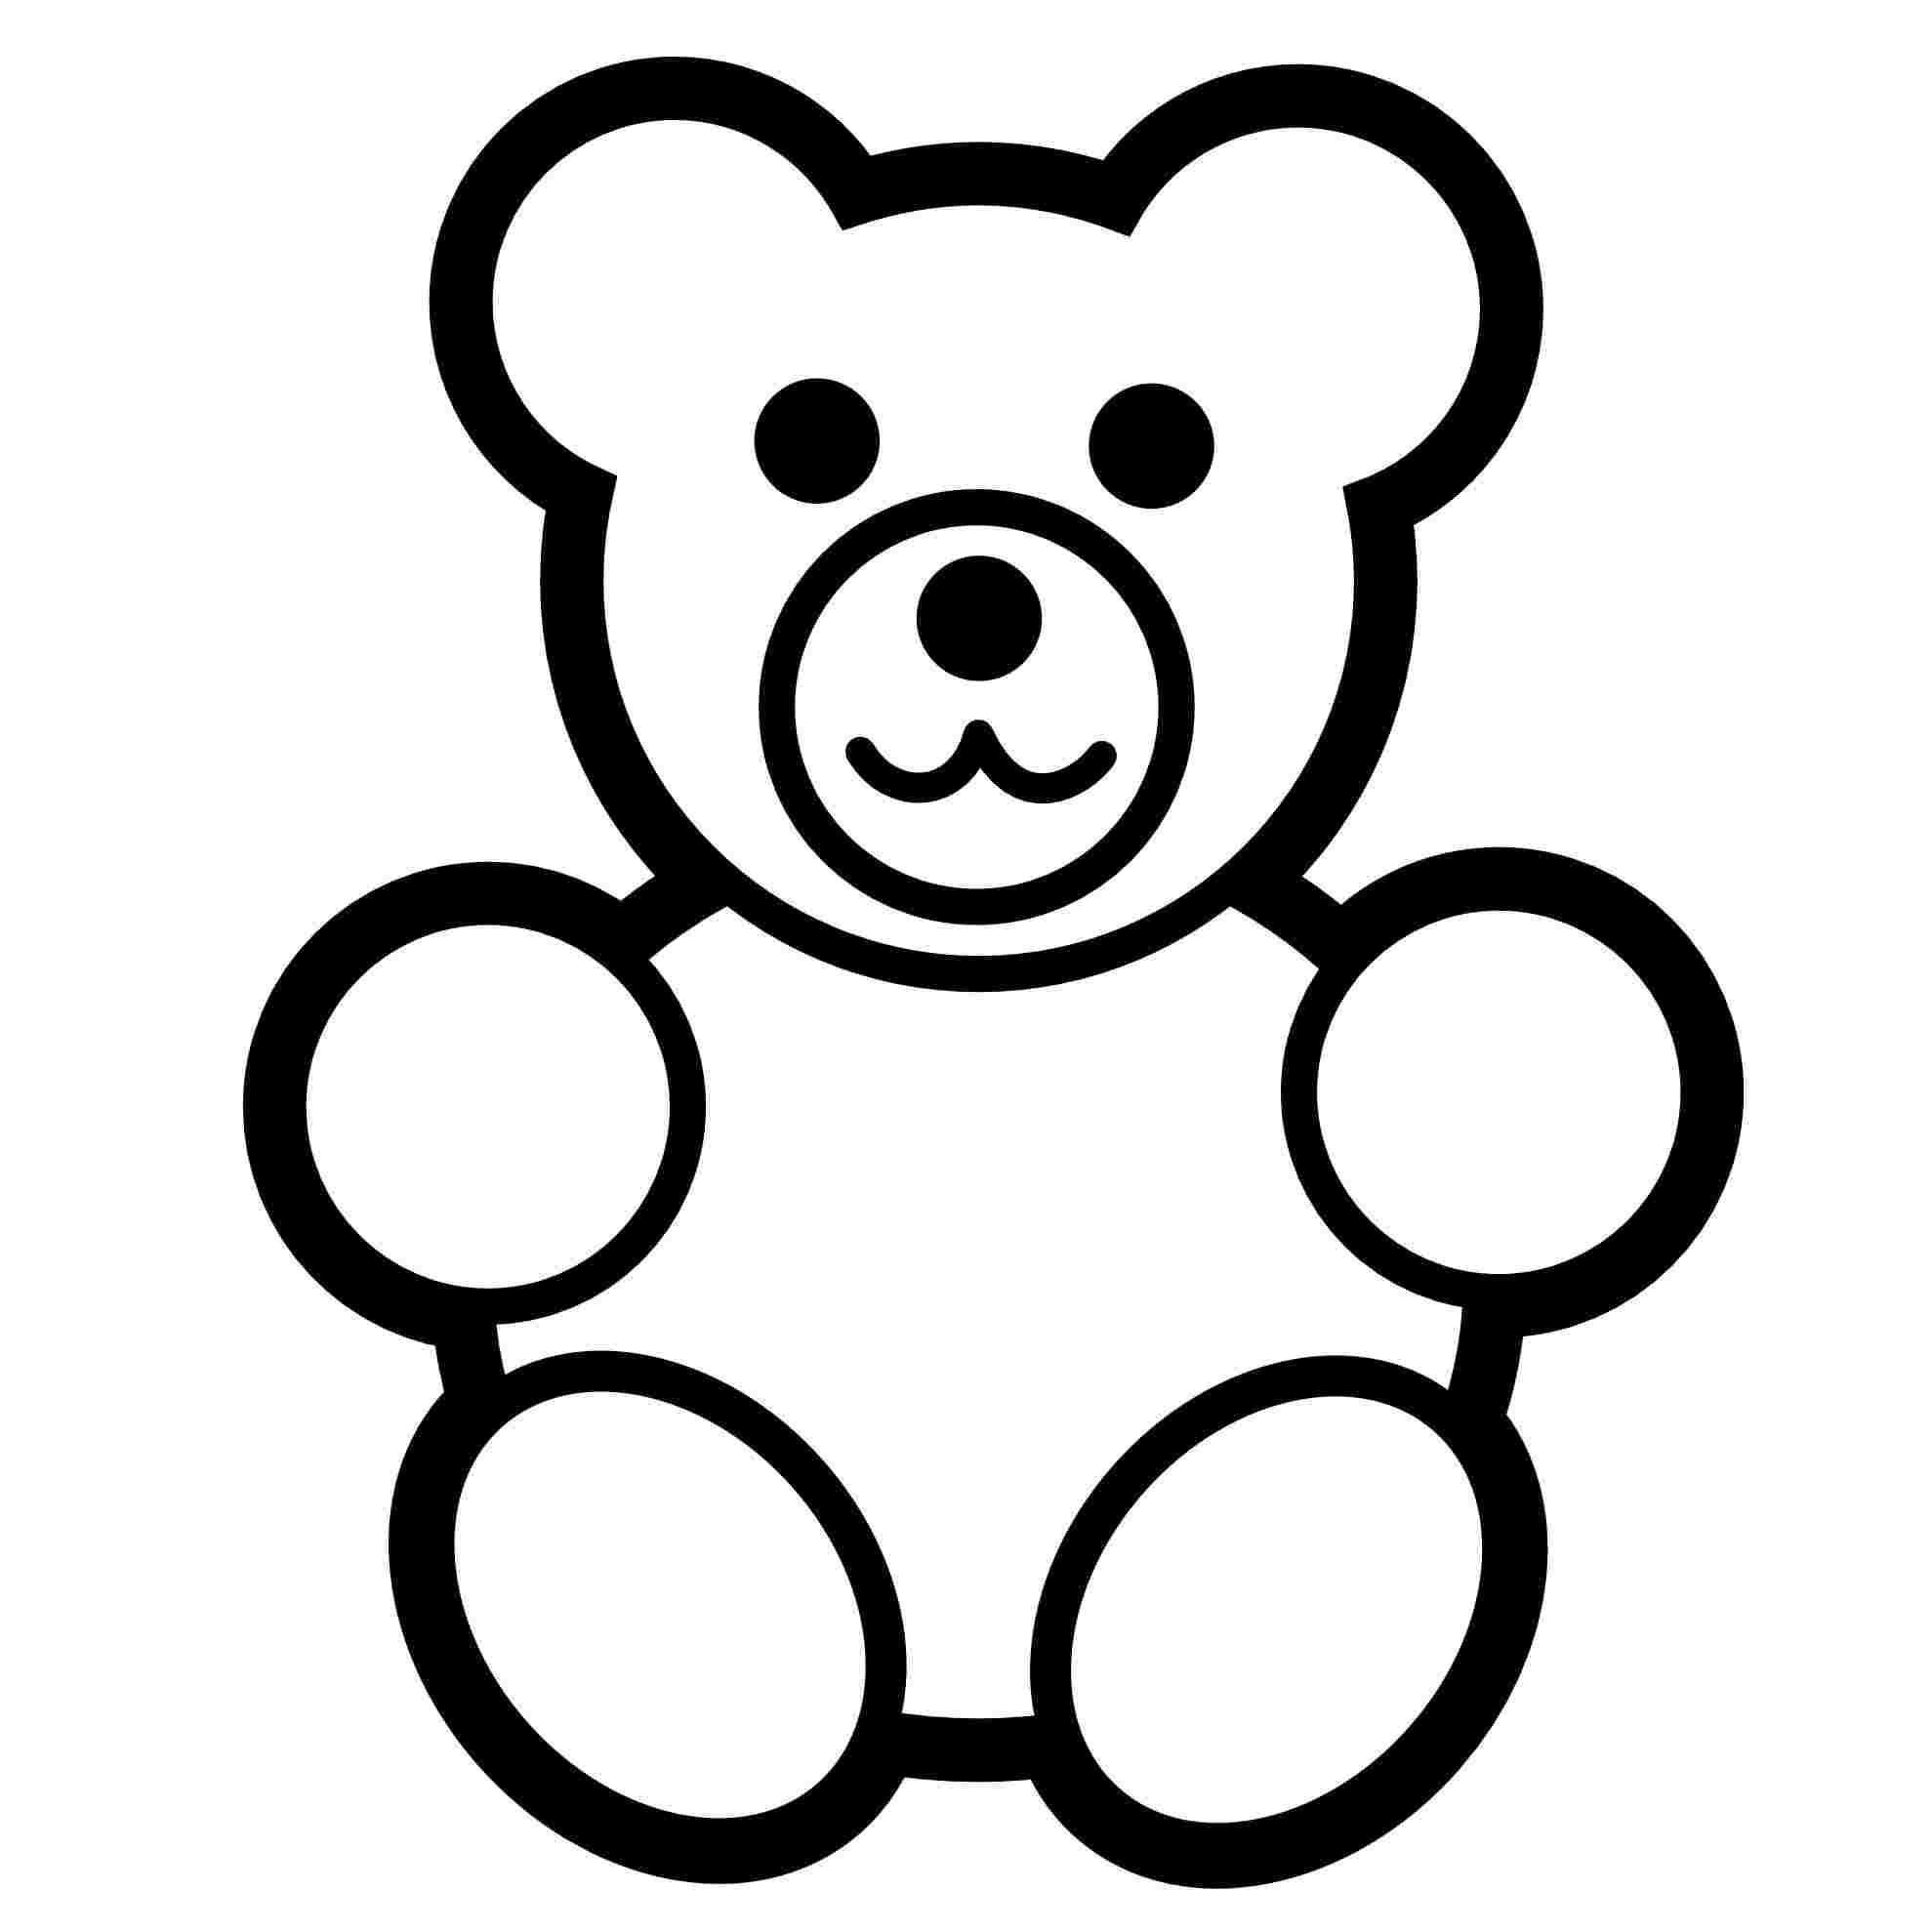 colouring pages of teddy bears free printable teddy bear.